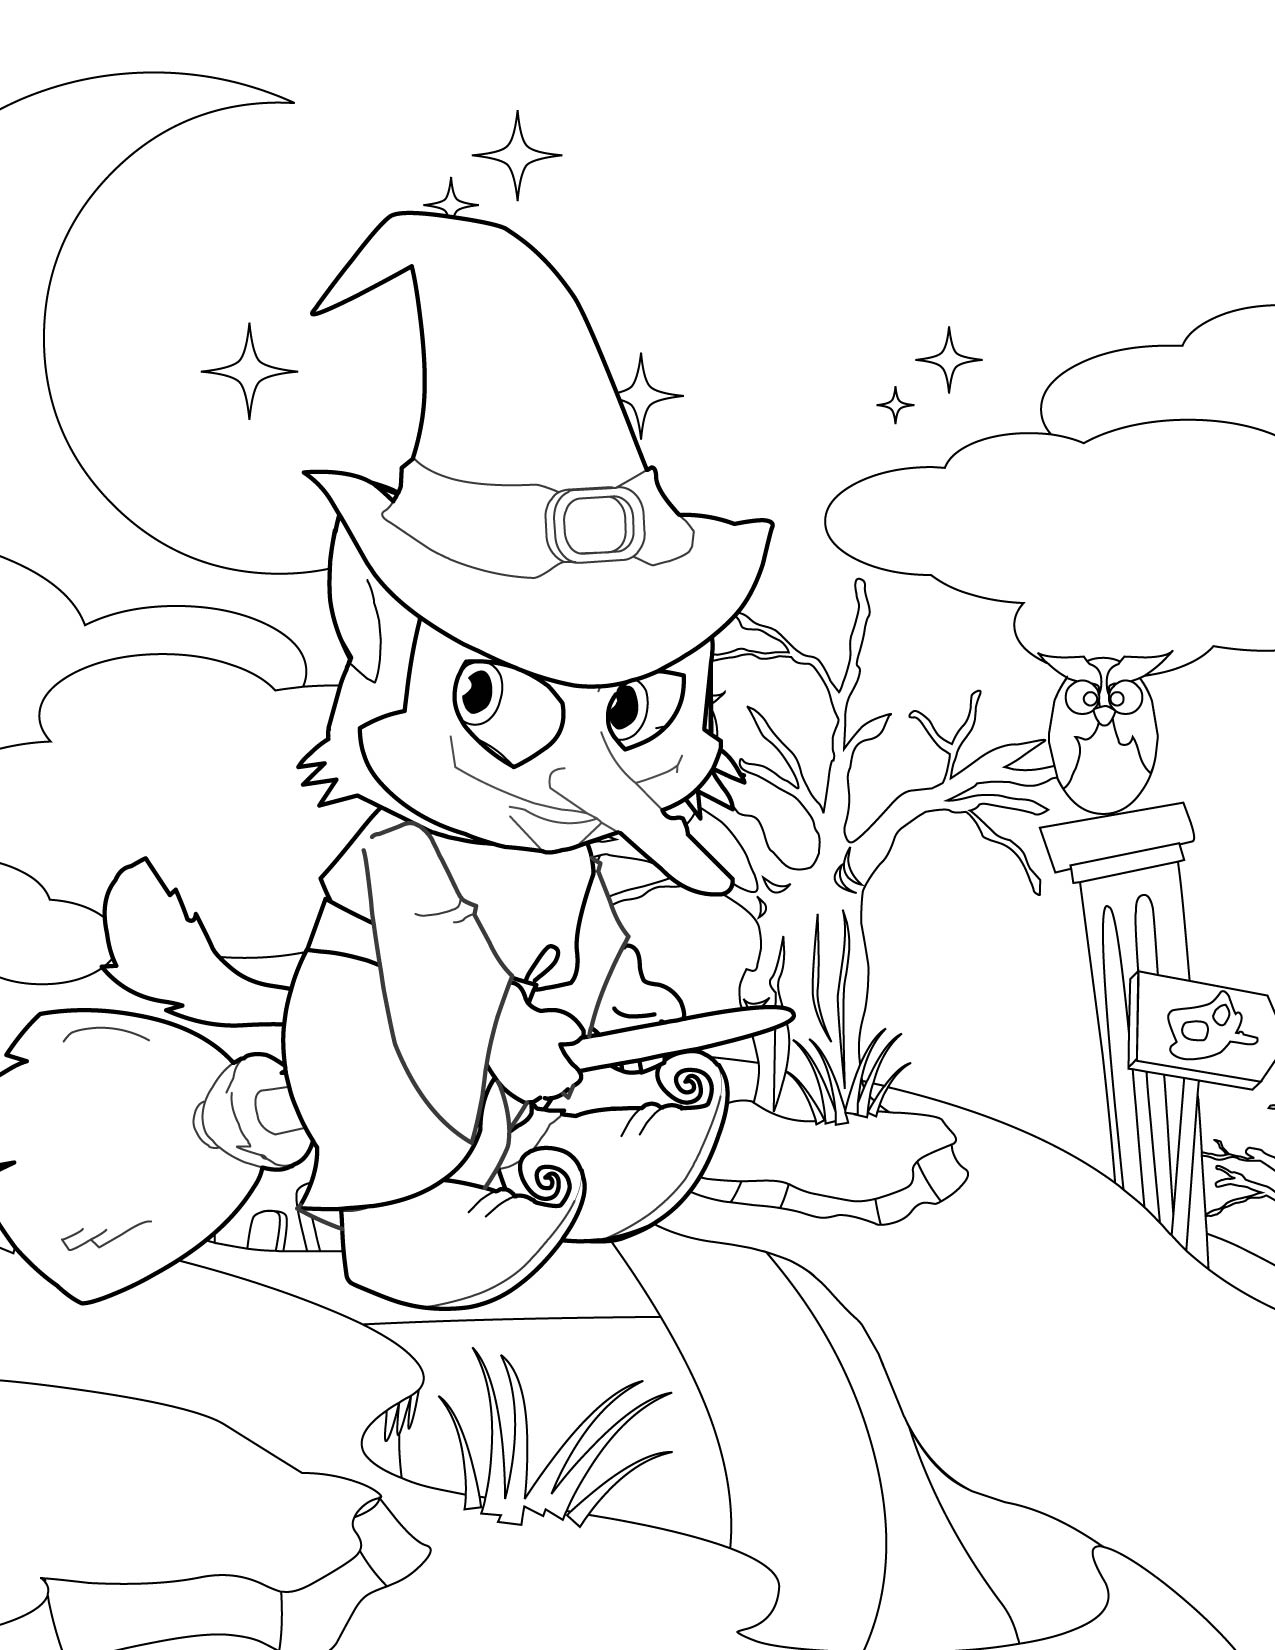 Witch Coloring Page Handipoints